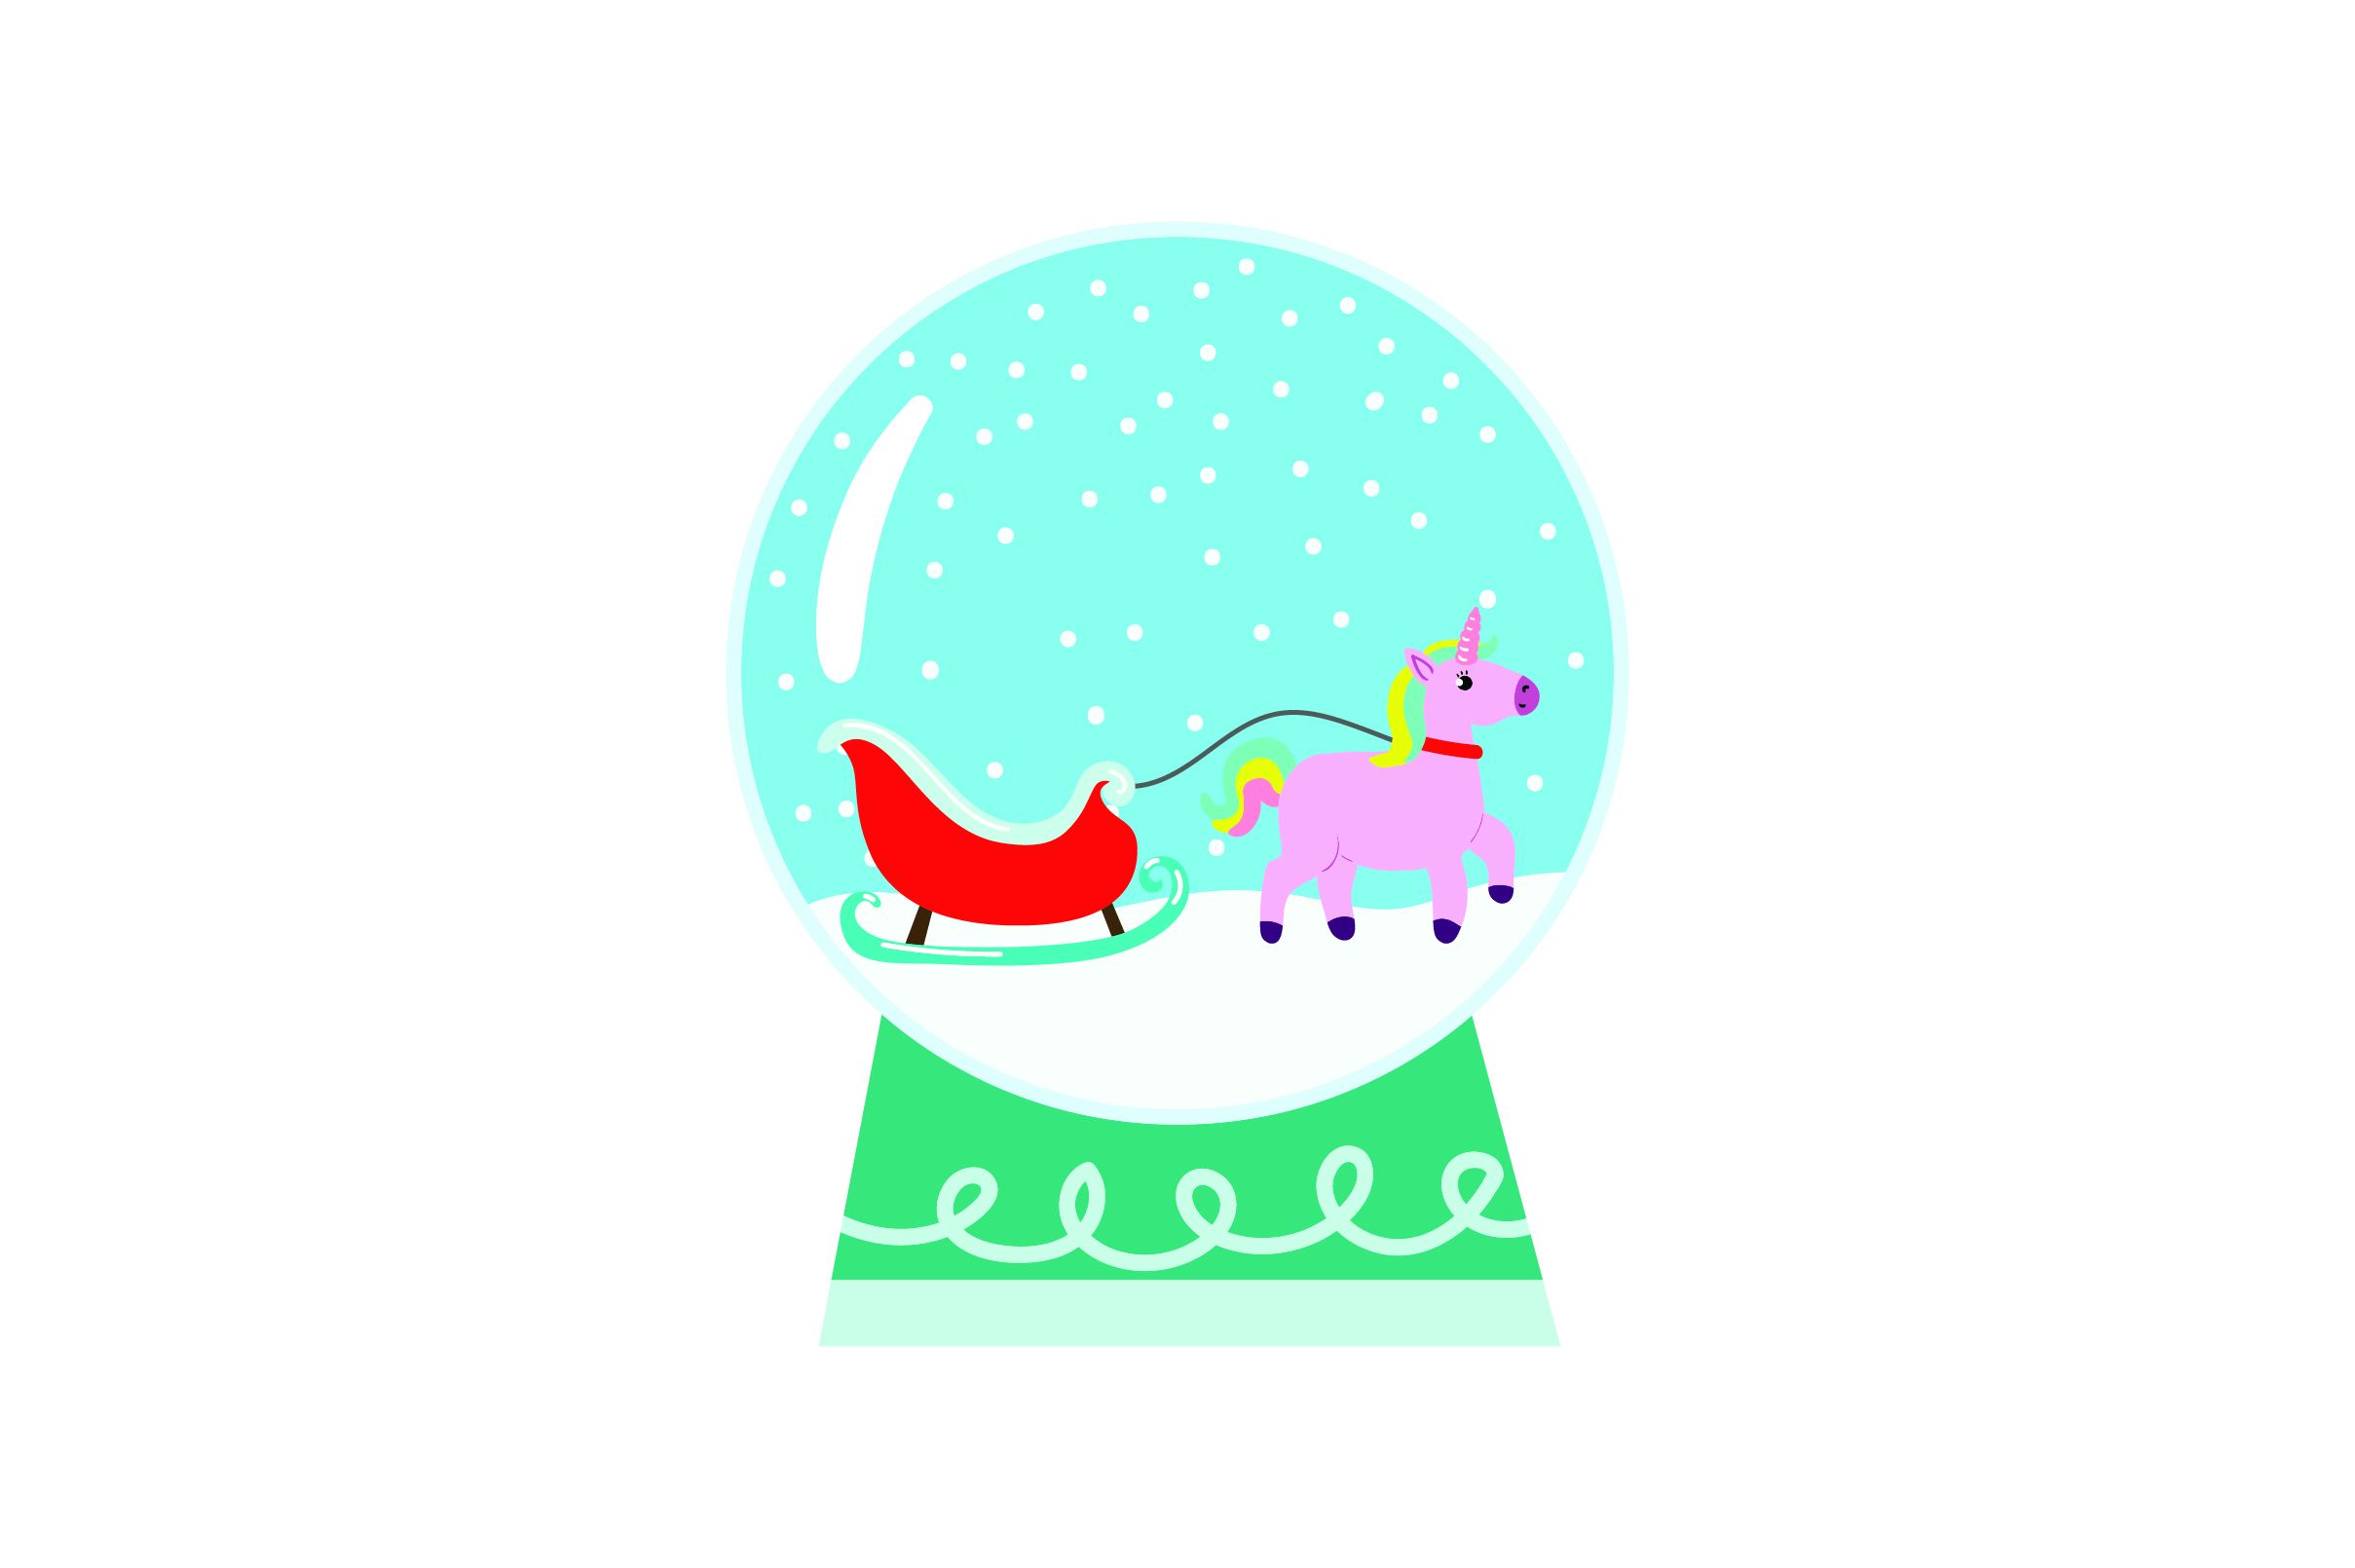 Christmas Unicorn Svg Free Svg Cut Files Create Your Diy Projects Using Your Cricut Explore Silhouette And More The Free Cut Files Include Svg Dxf Eps And Png Files